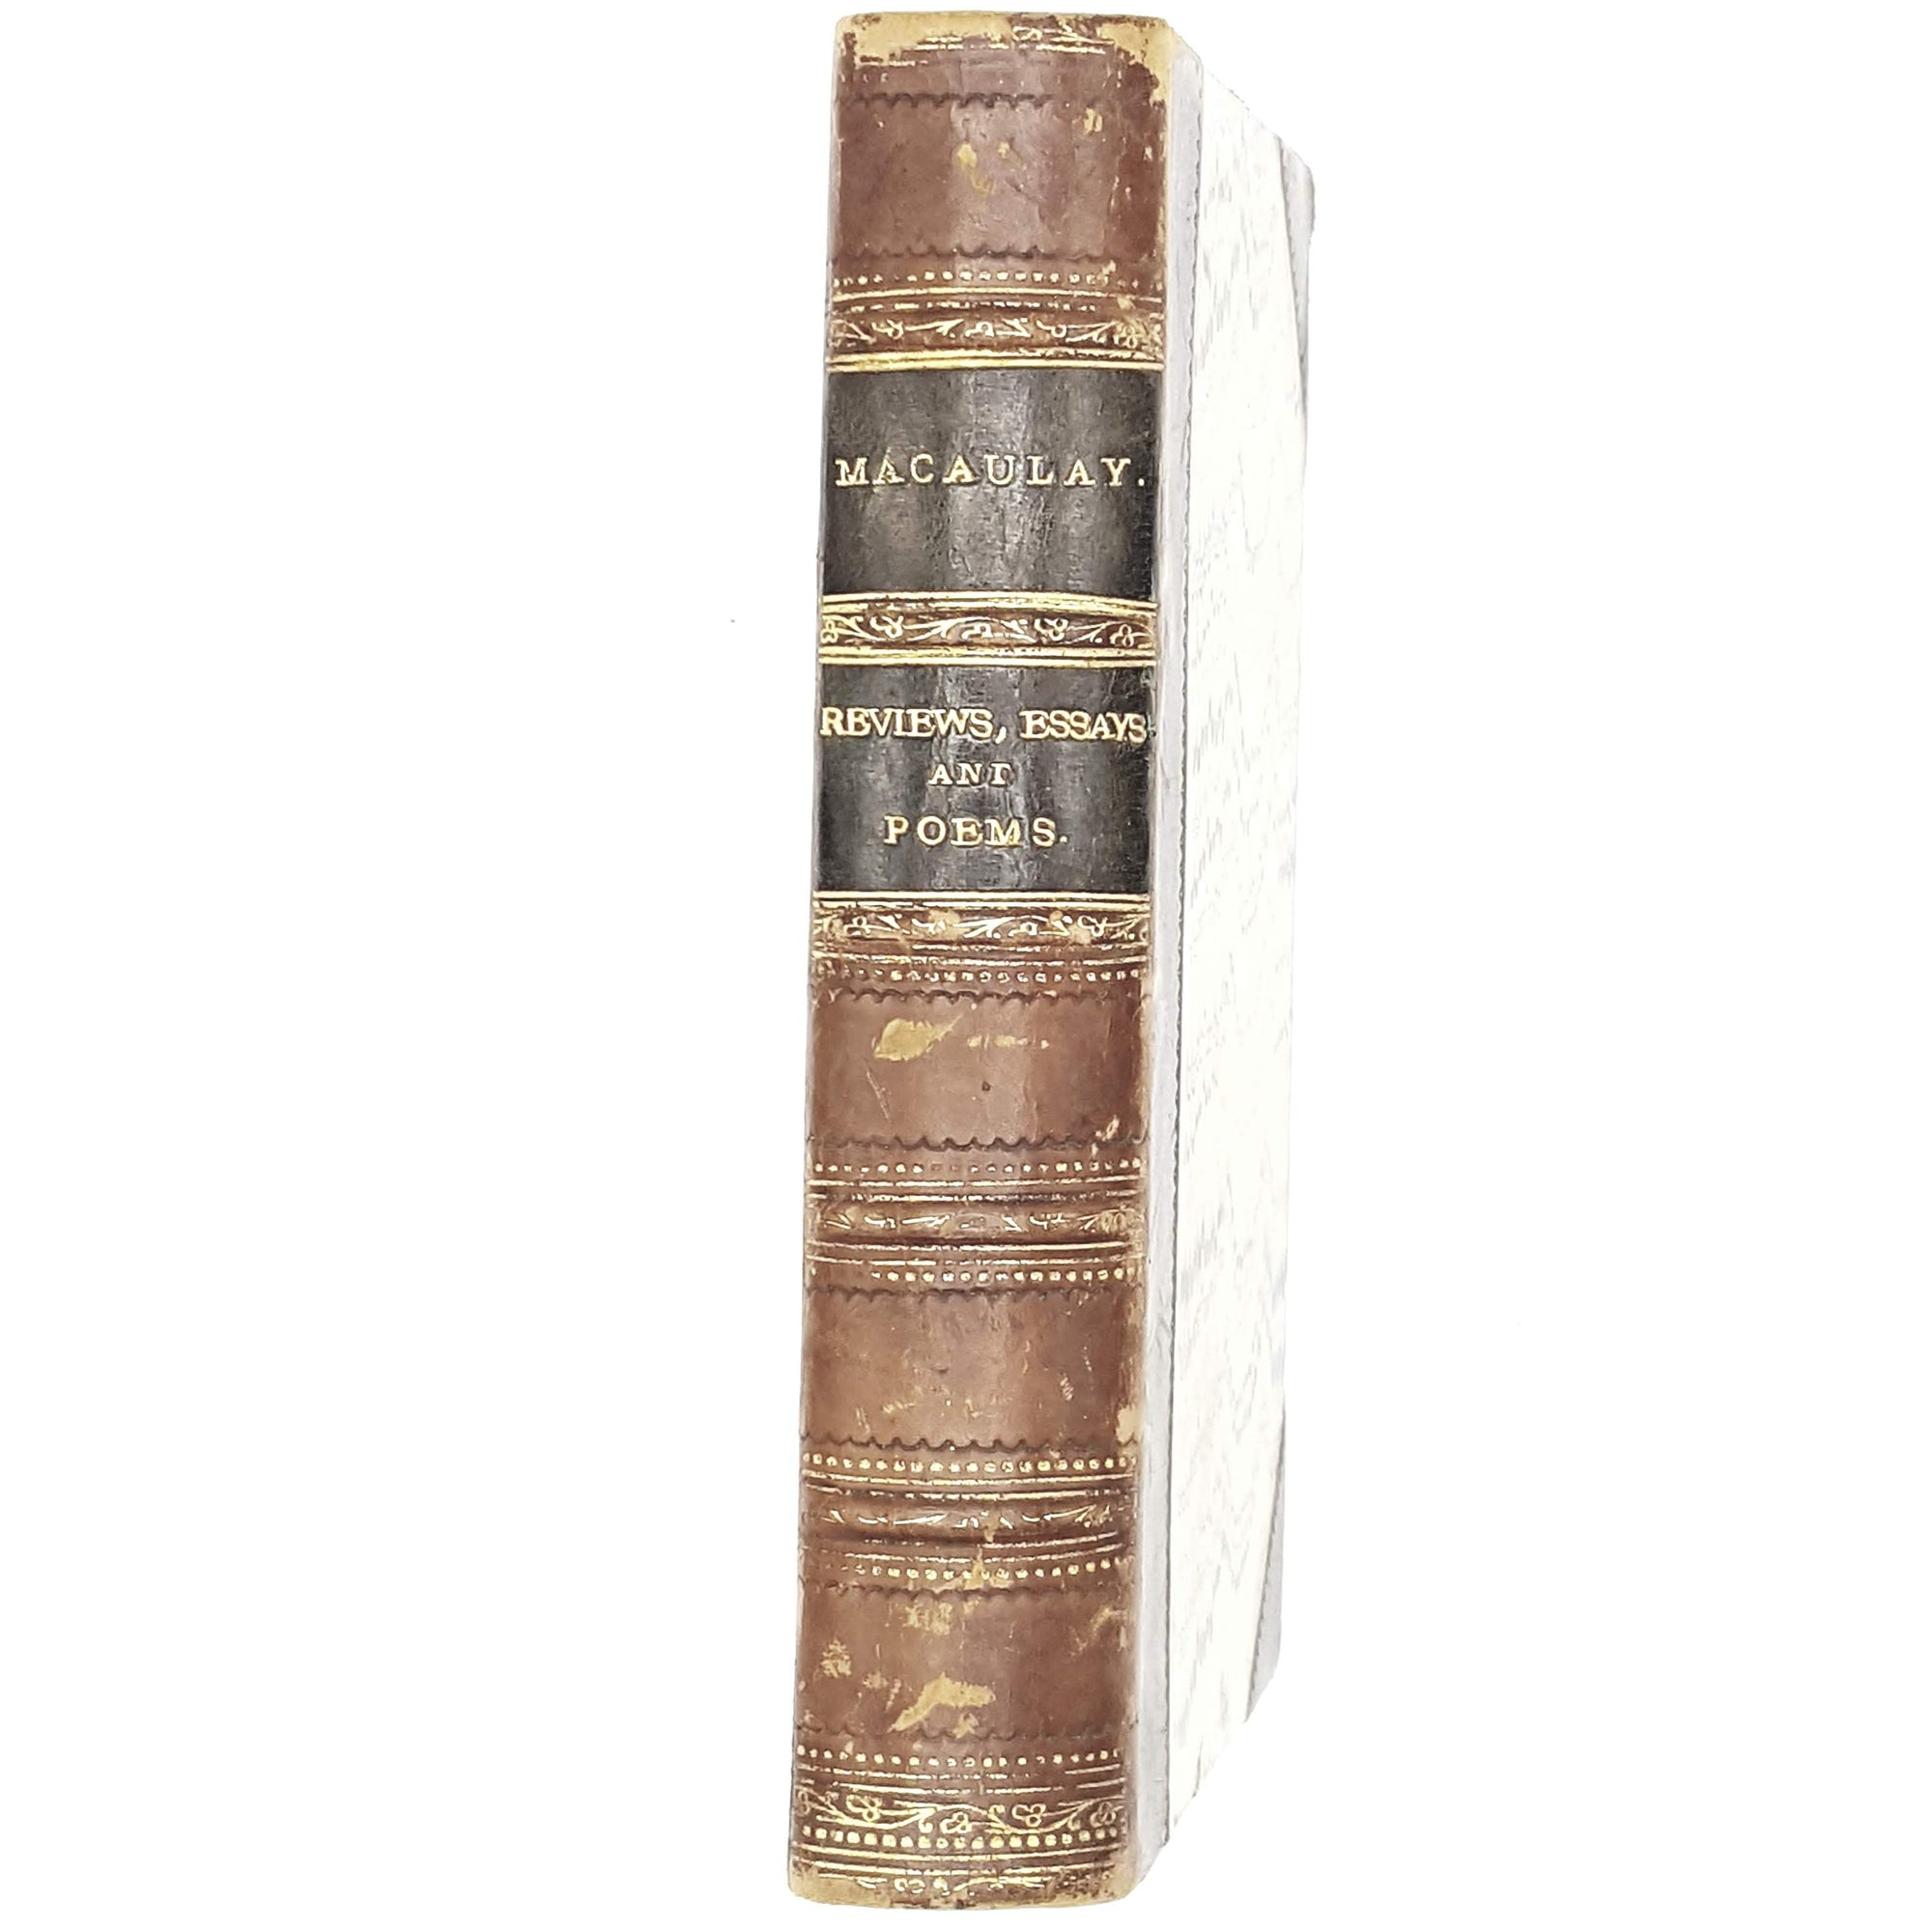 Lord Macaulay Reviews, Essays and Poems c1890